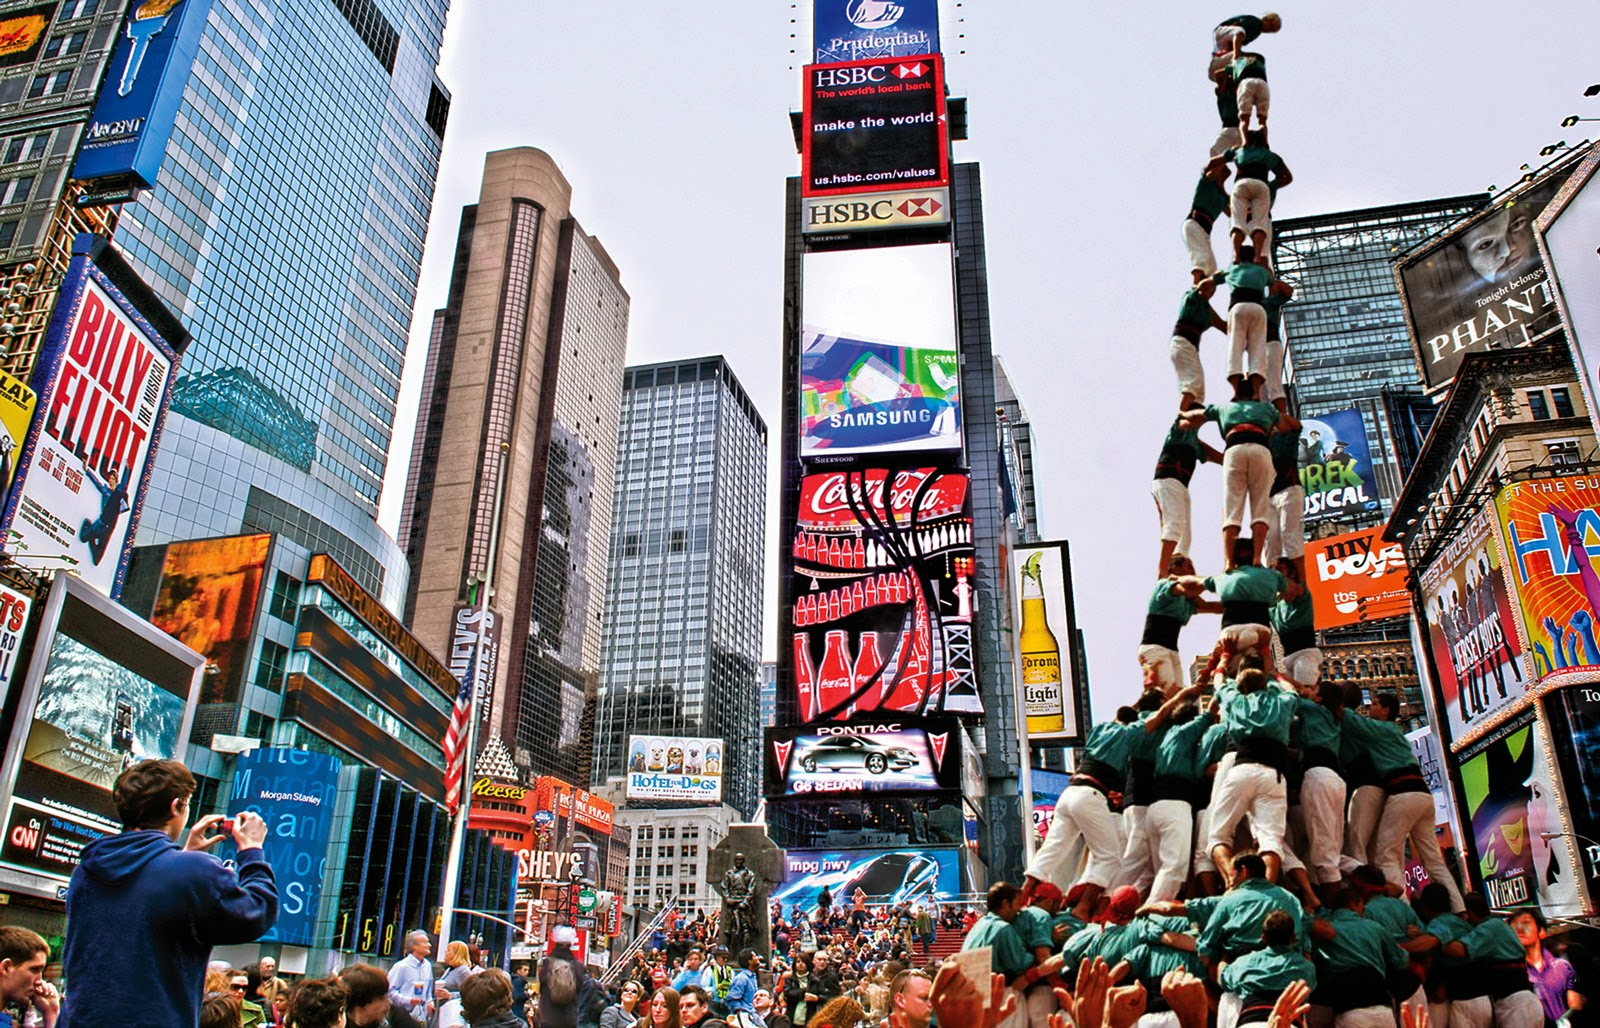 Human Towers in New York